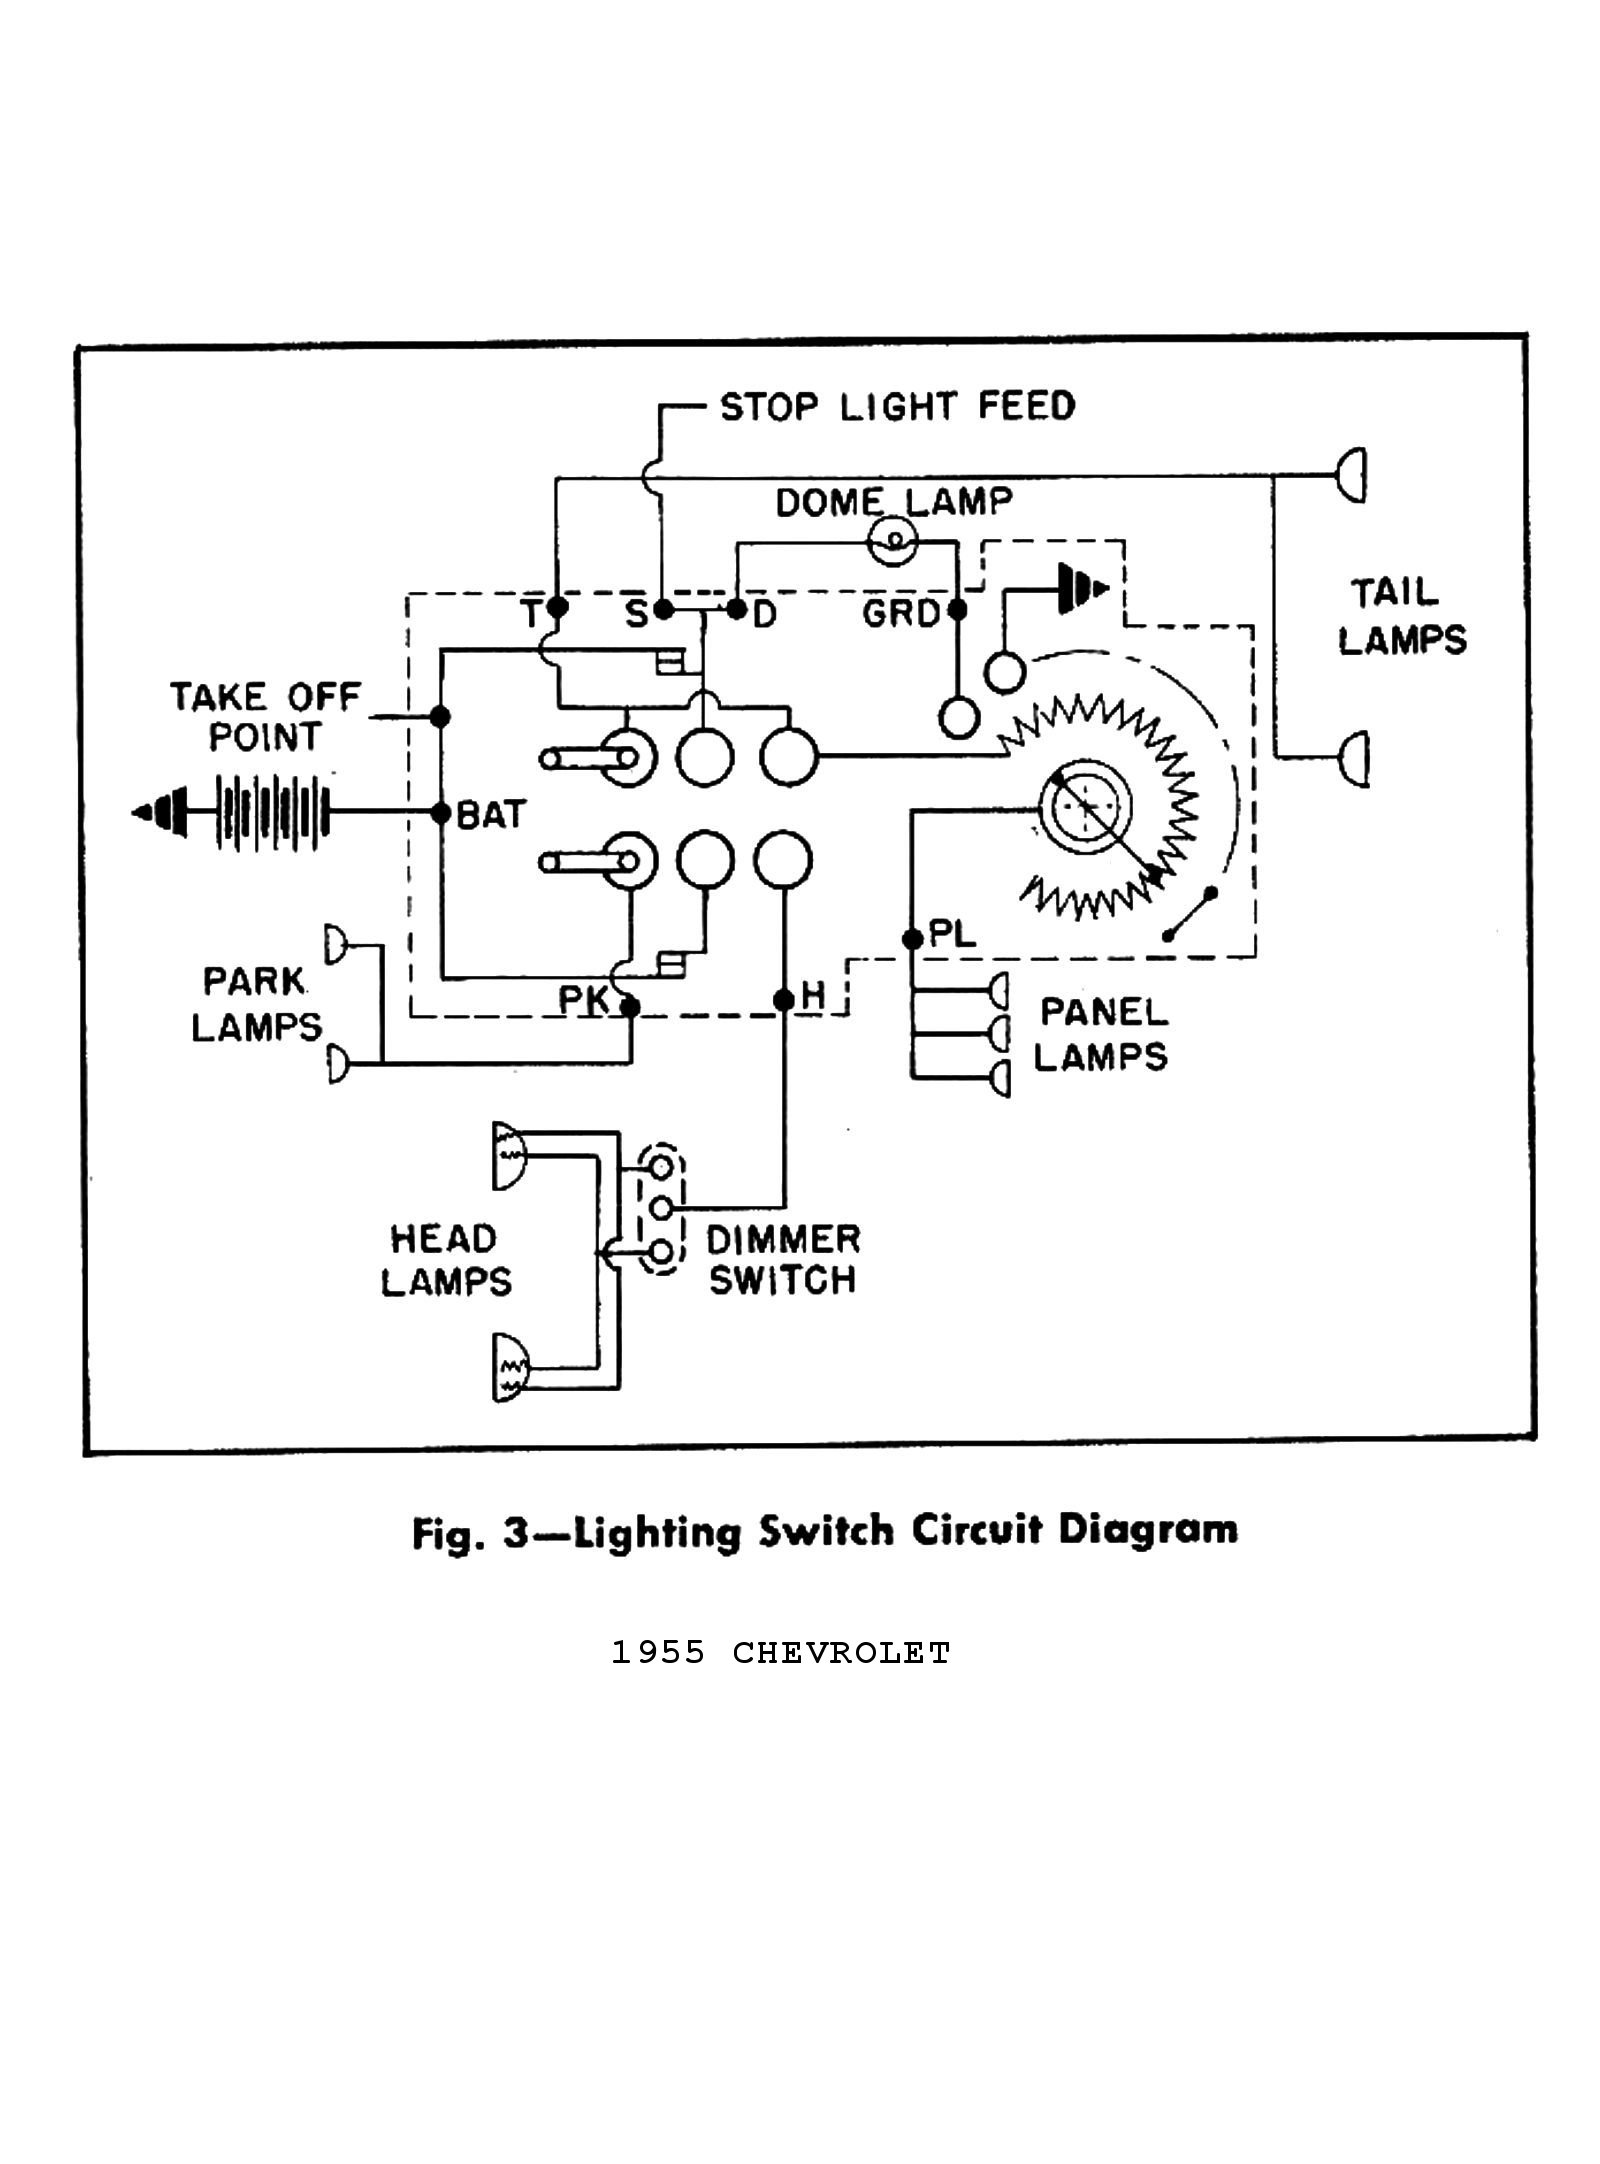 hight resolution of truck wiring diagram on ignition switch wiring diagram 1949 plymouth 1962 chevy impala wiring diagram 1949